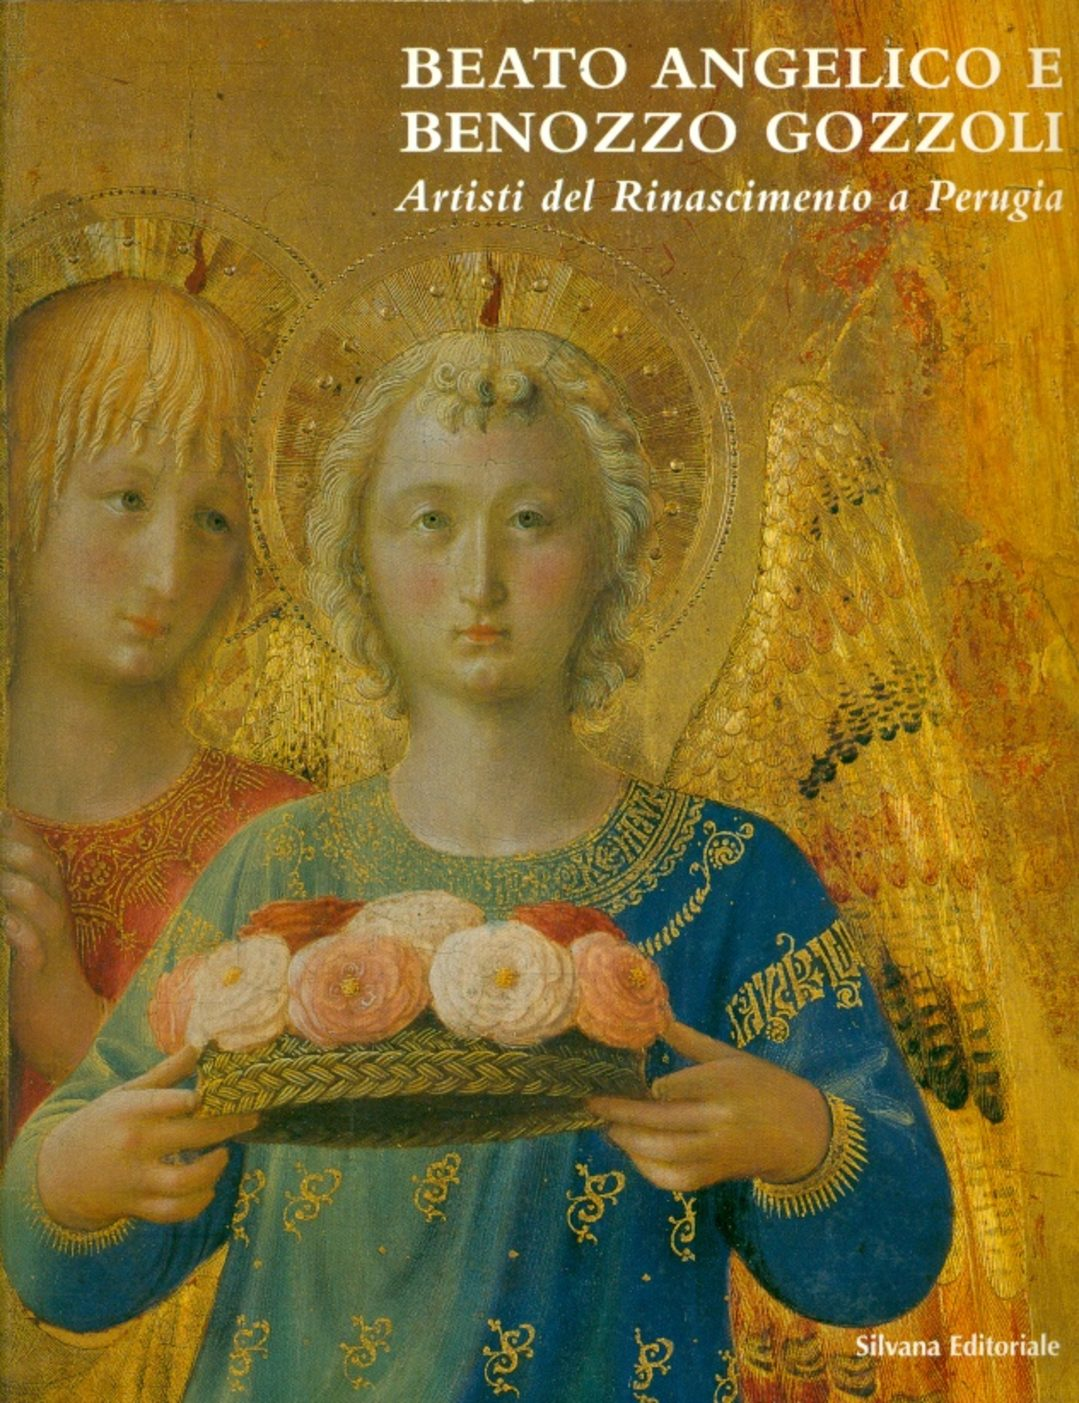 https://cbccoop.it/app/uploads/2017/06/COPbenozzo-gozzoli-narni-pdf.jpg